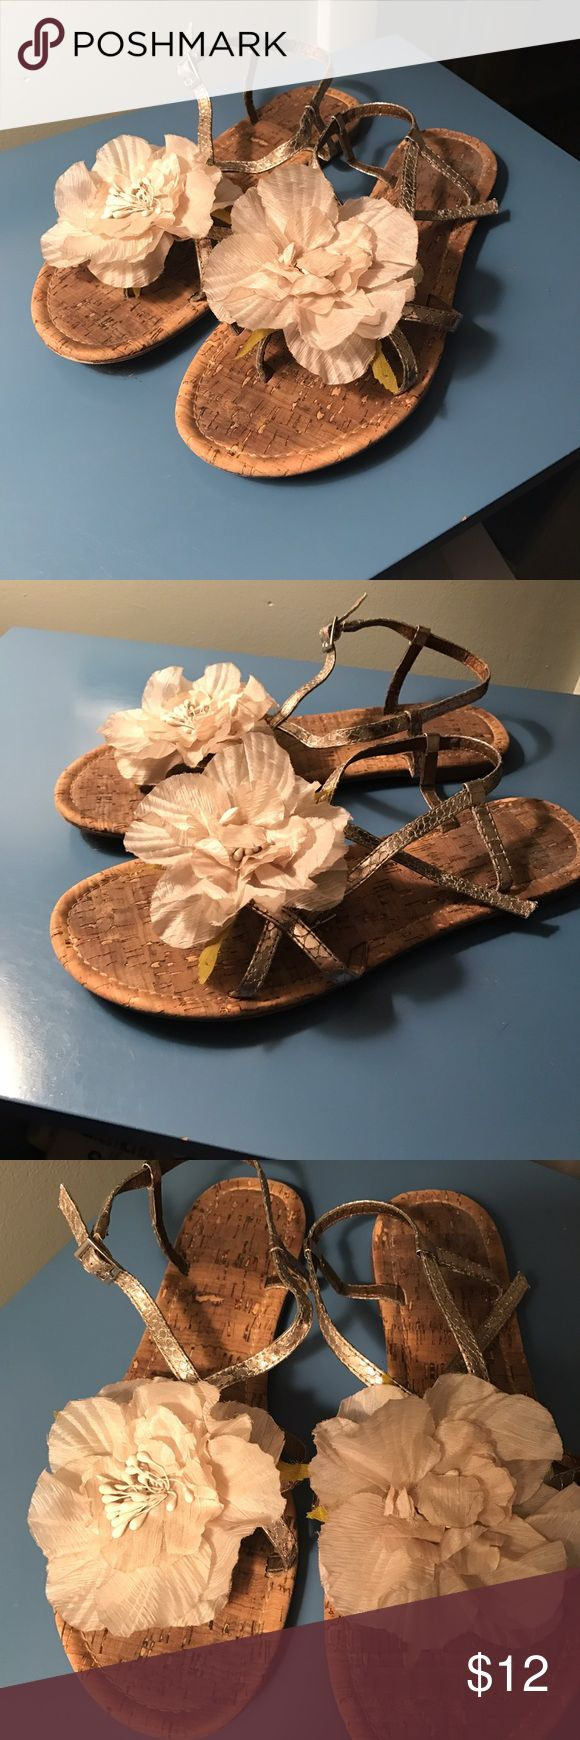 SUPER CUTE flowered cork sandals Cork sandals with flowers on each foot! Perfect for summer! Report Shoes Sandals